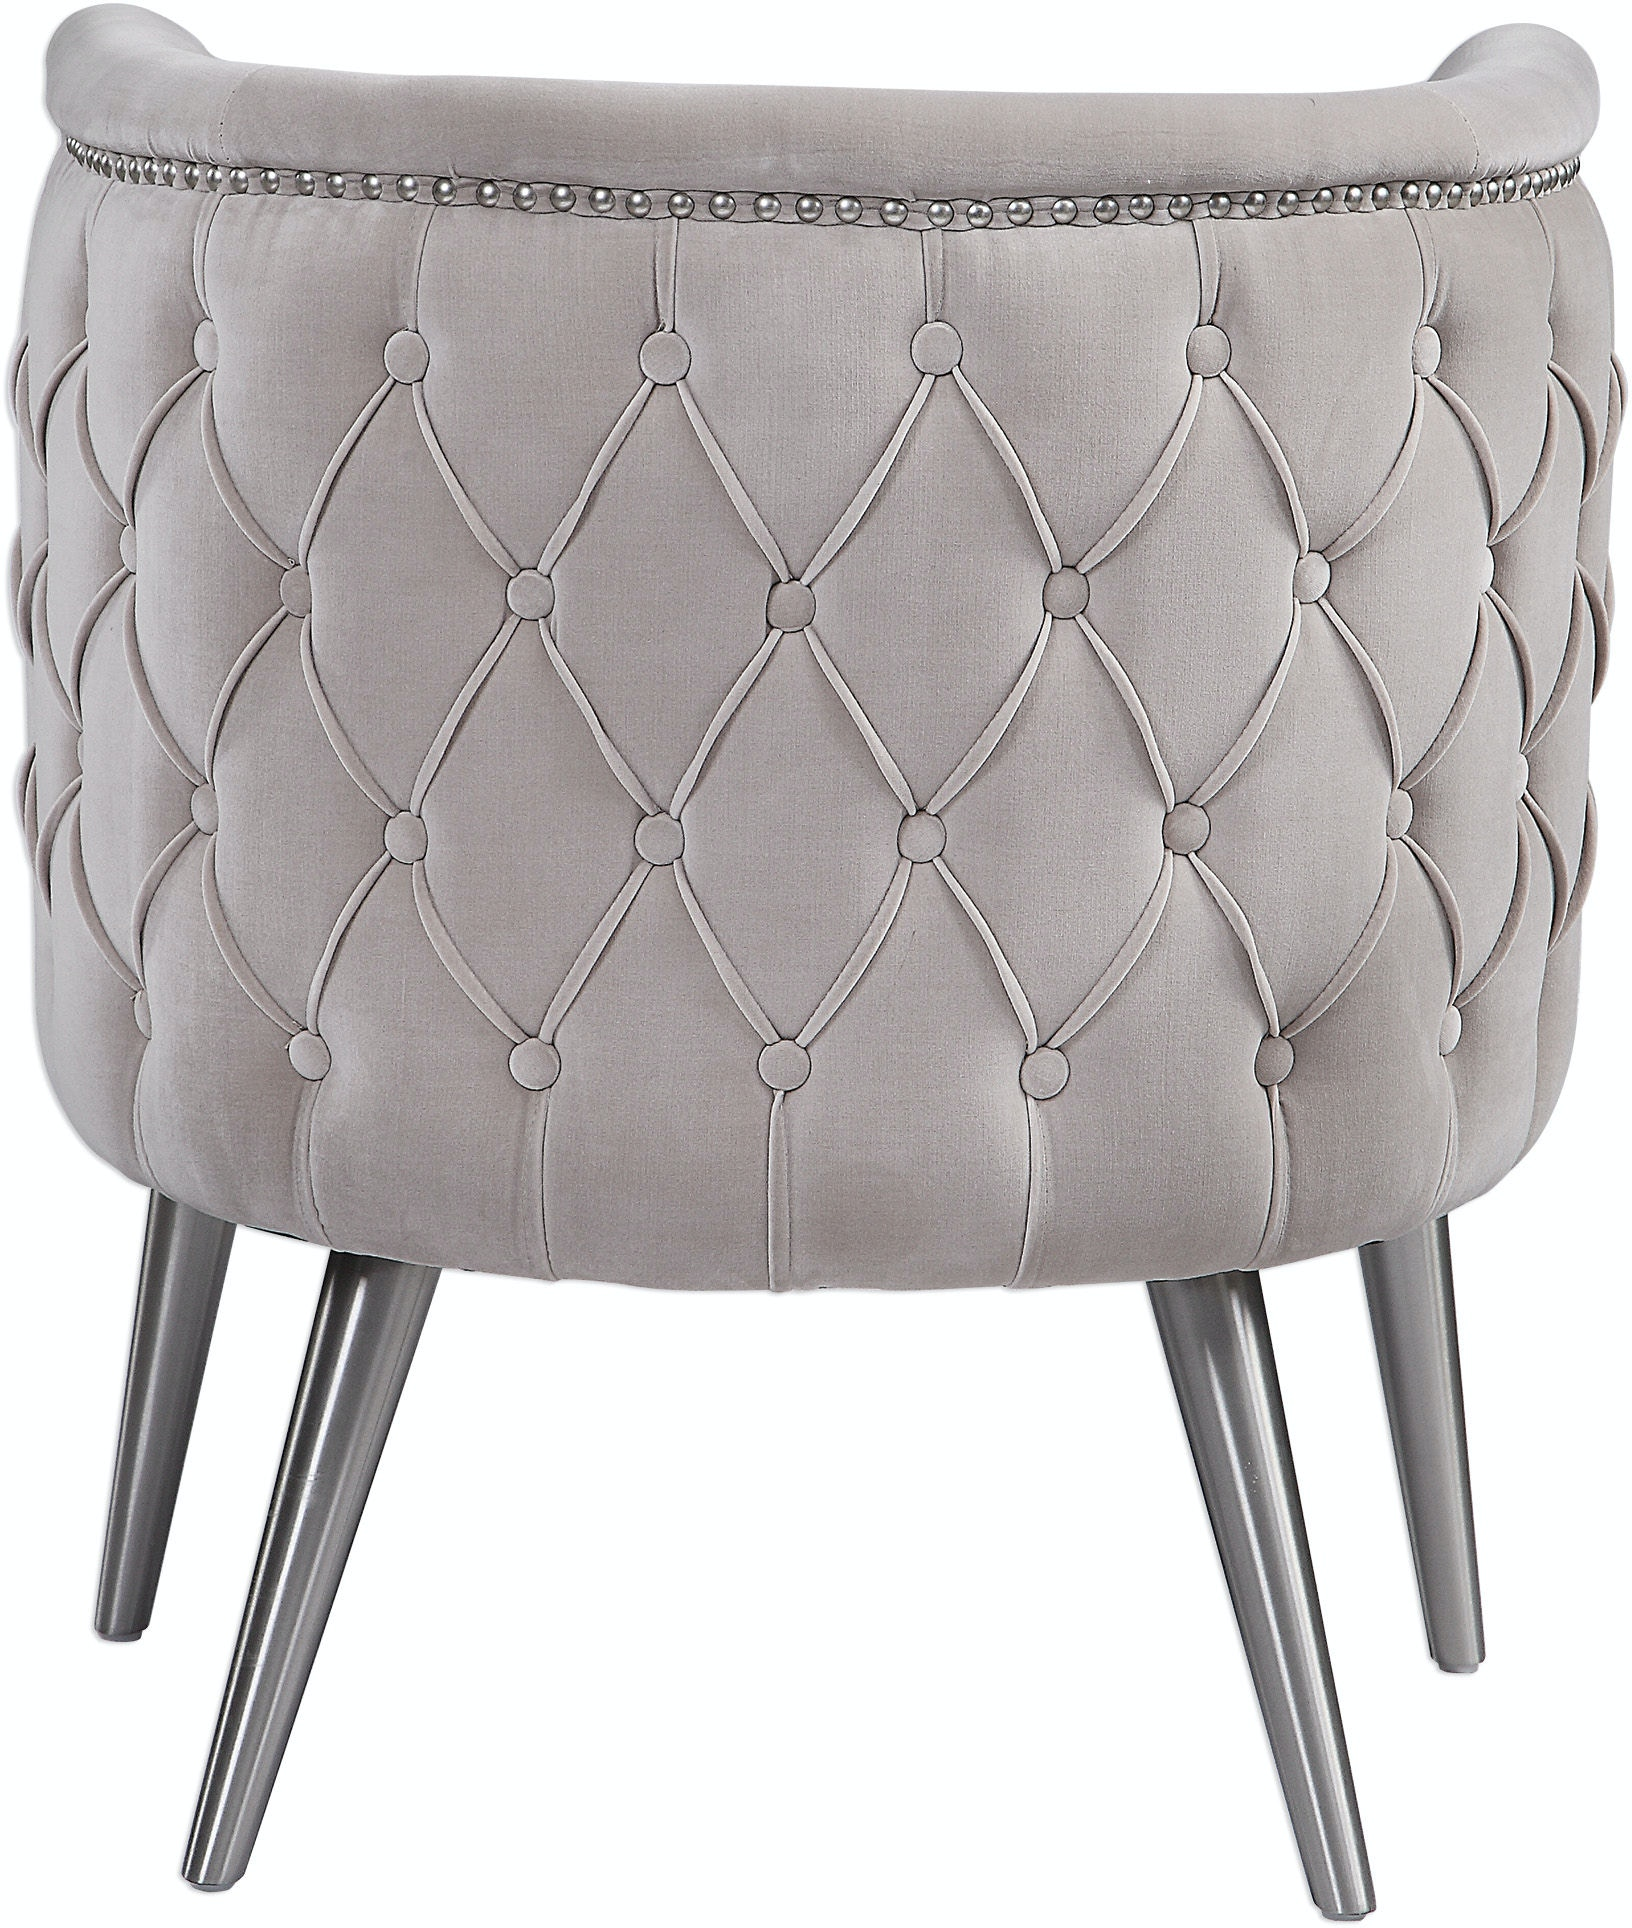 Groovy Uttermost Living Room Haider Tufted Accent Chair Ut23508 Walter E Smithe Furniture Design Ibusinesslaw Wood Chair Design Ideas Ibusinesslaworg